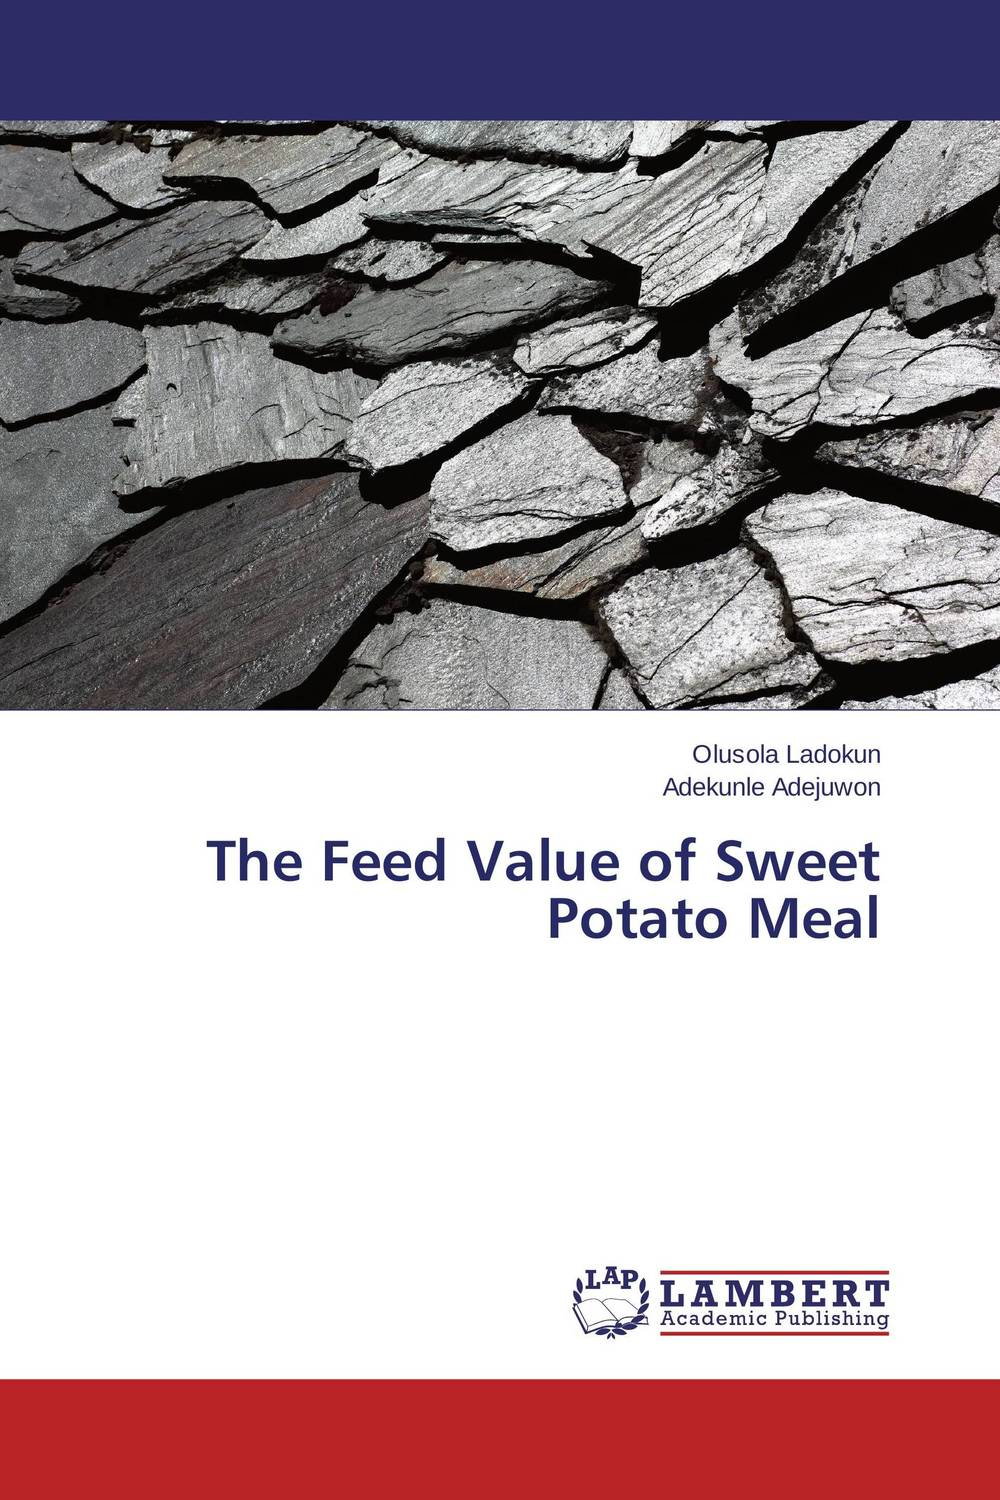 The Feed Value of Sweet Potato Meal